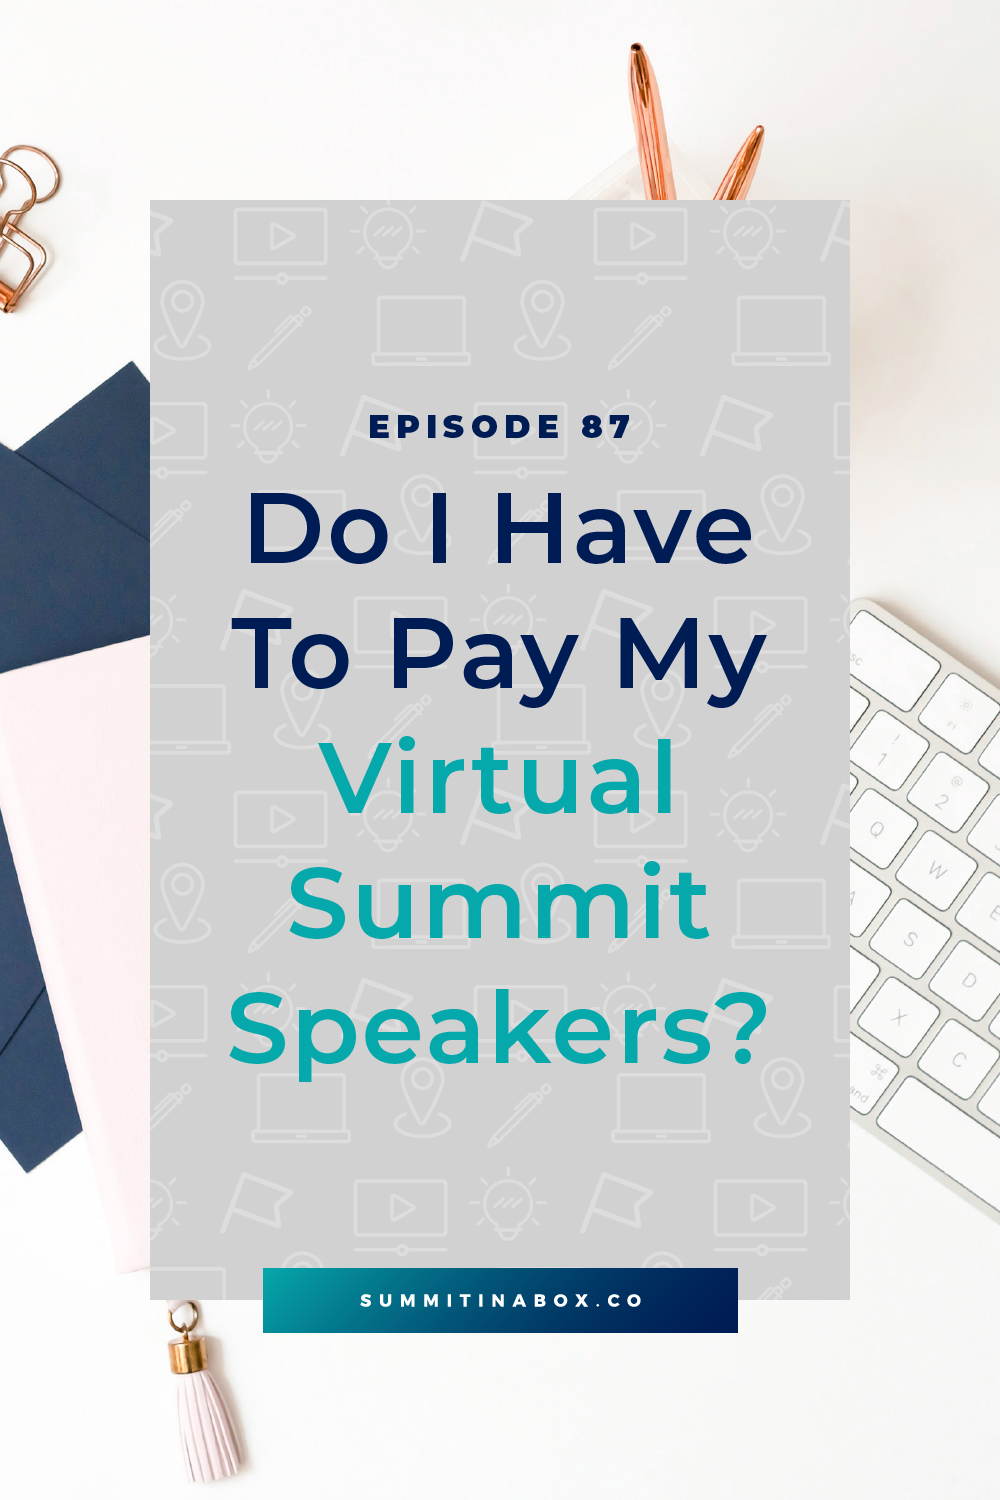 Trying to decide whether or not you need to pay virtual summit speakers? Let's cover both sides of this argument and what to do if you can't afford it.